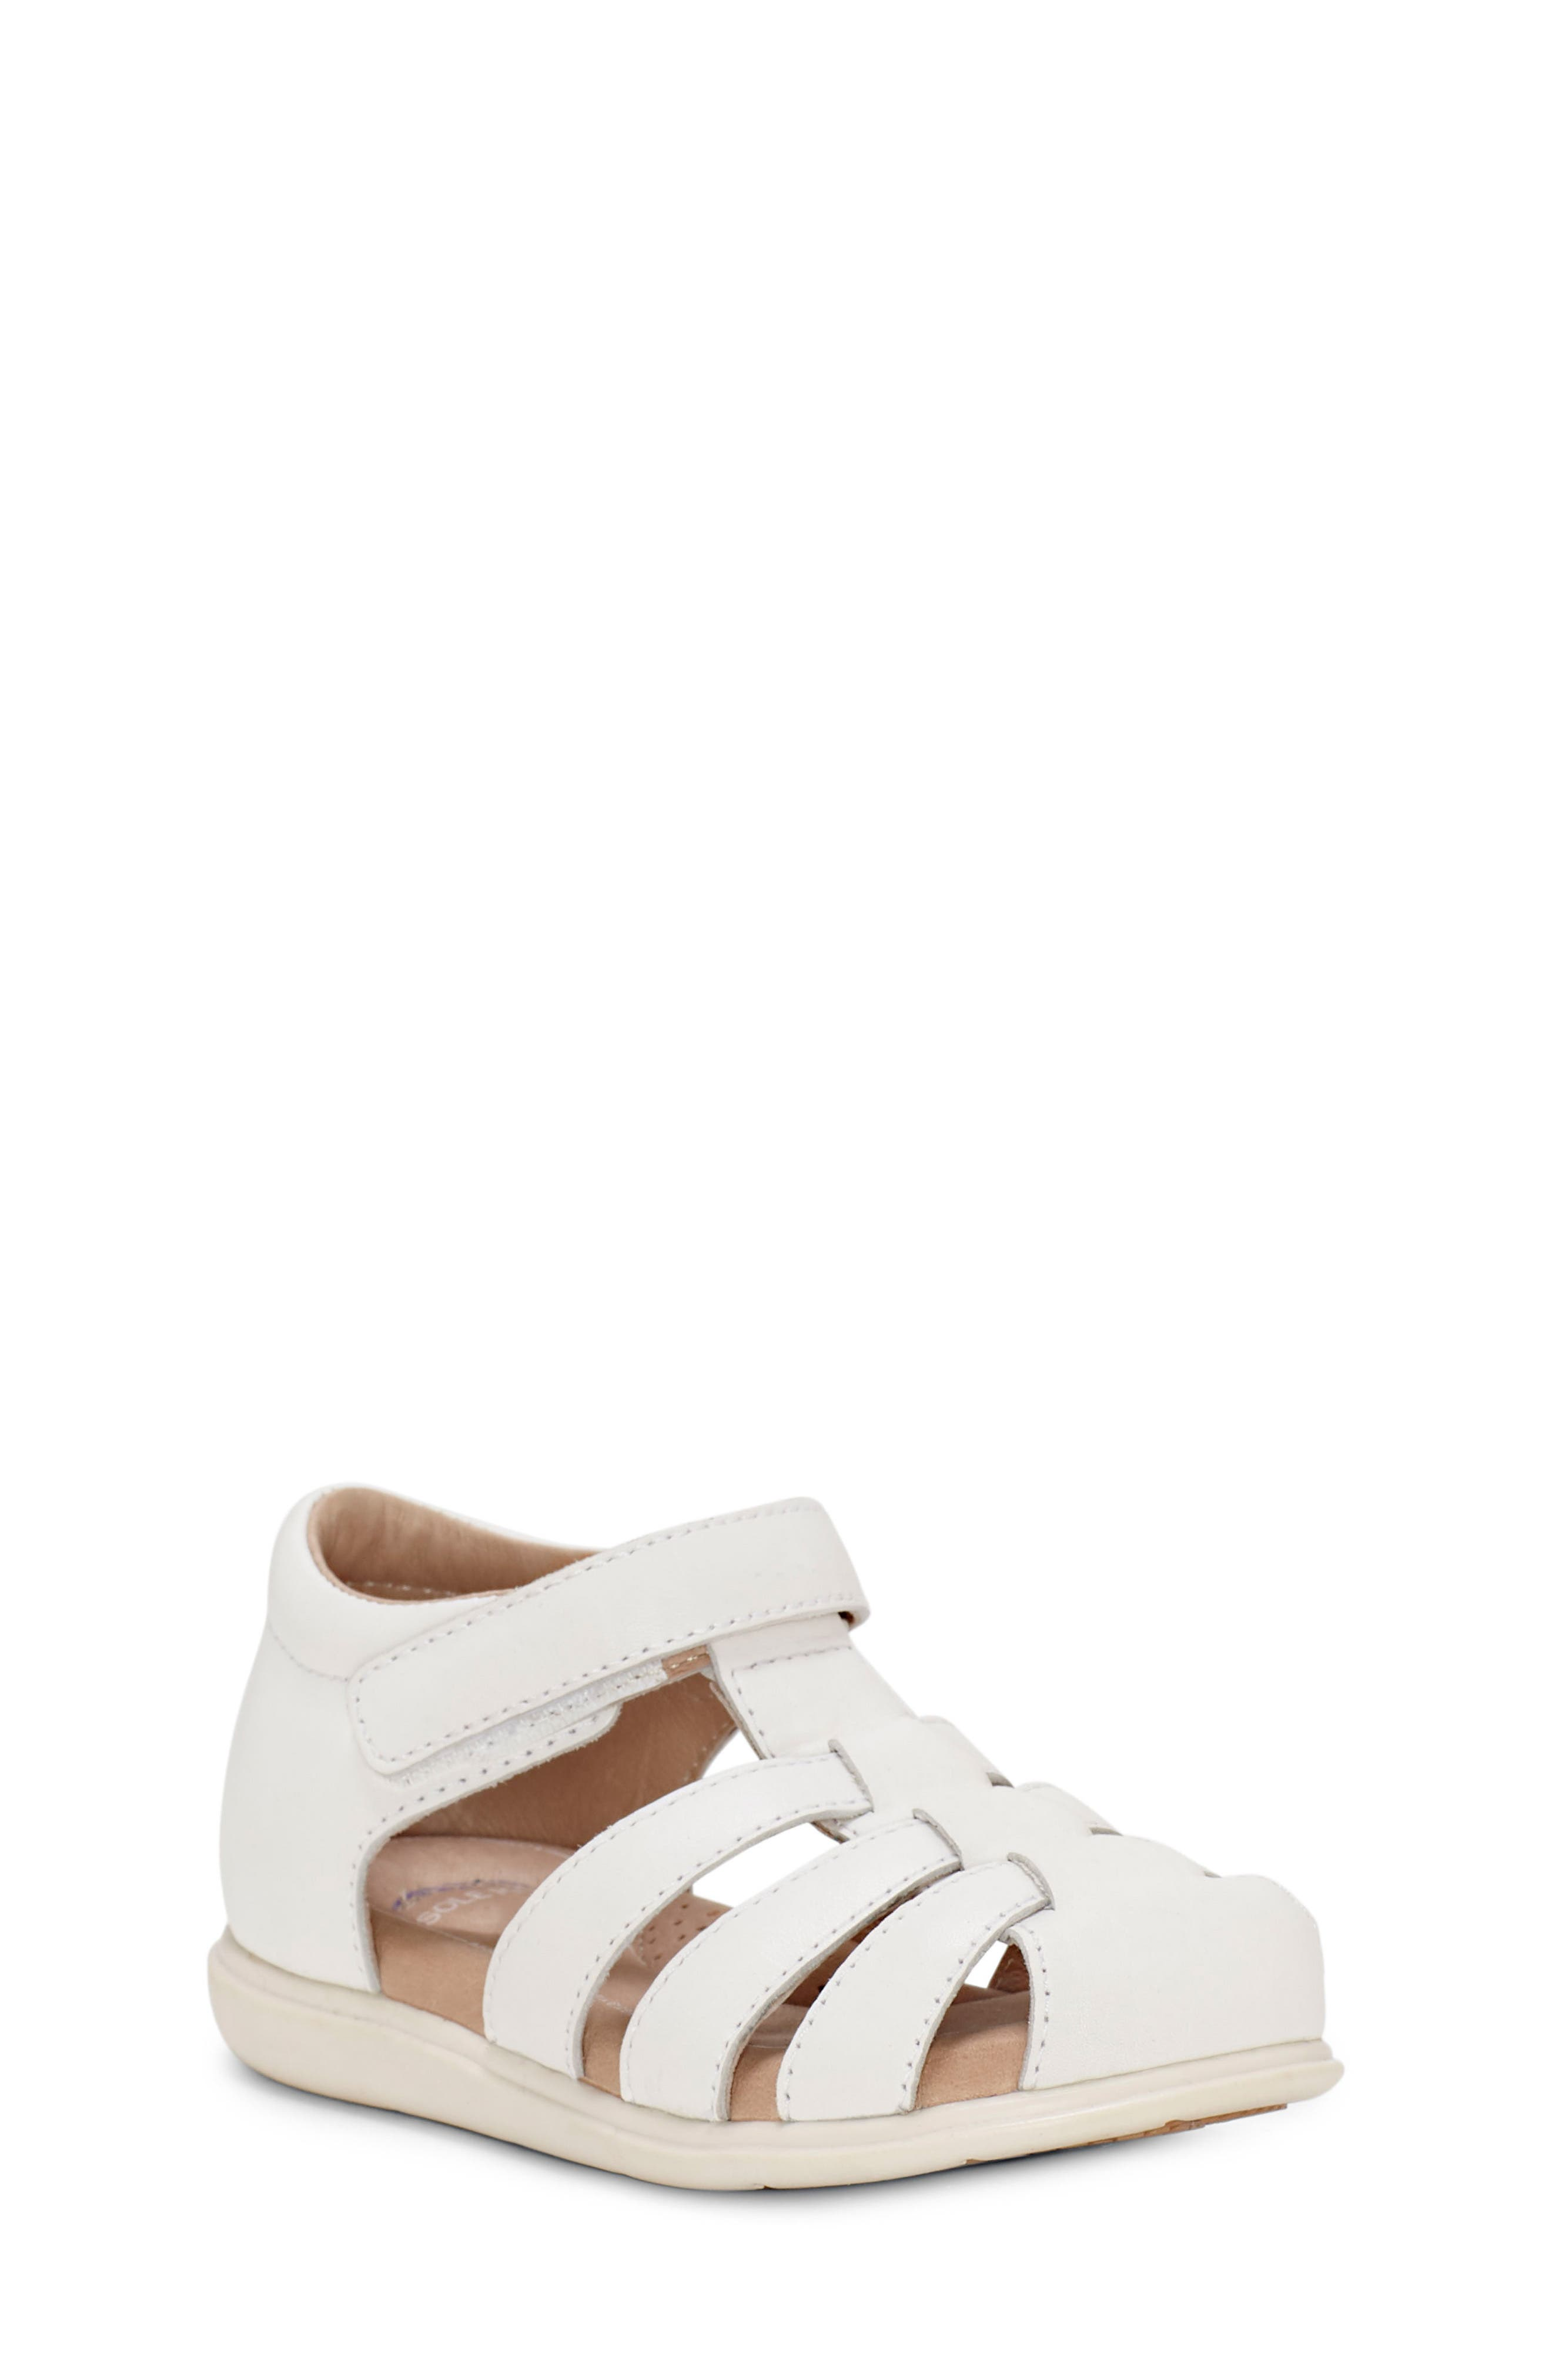 SOLE PLAY Caleb Sandal, Main, color, WHITE